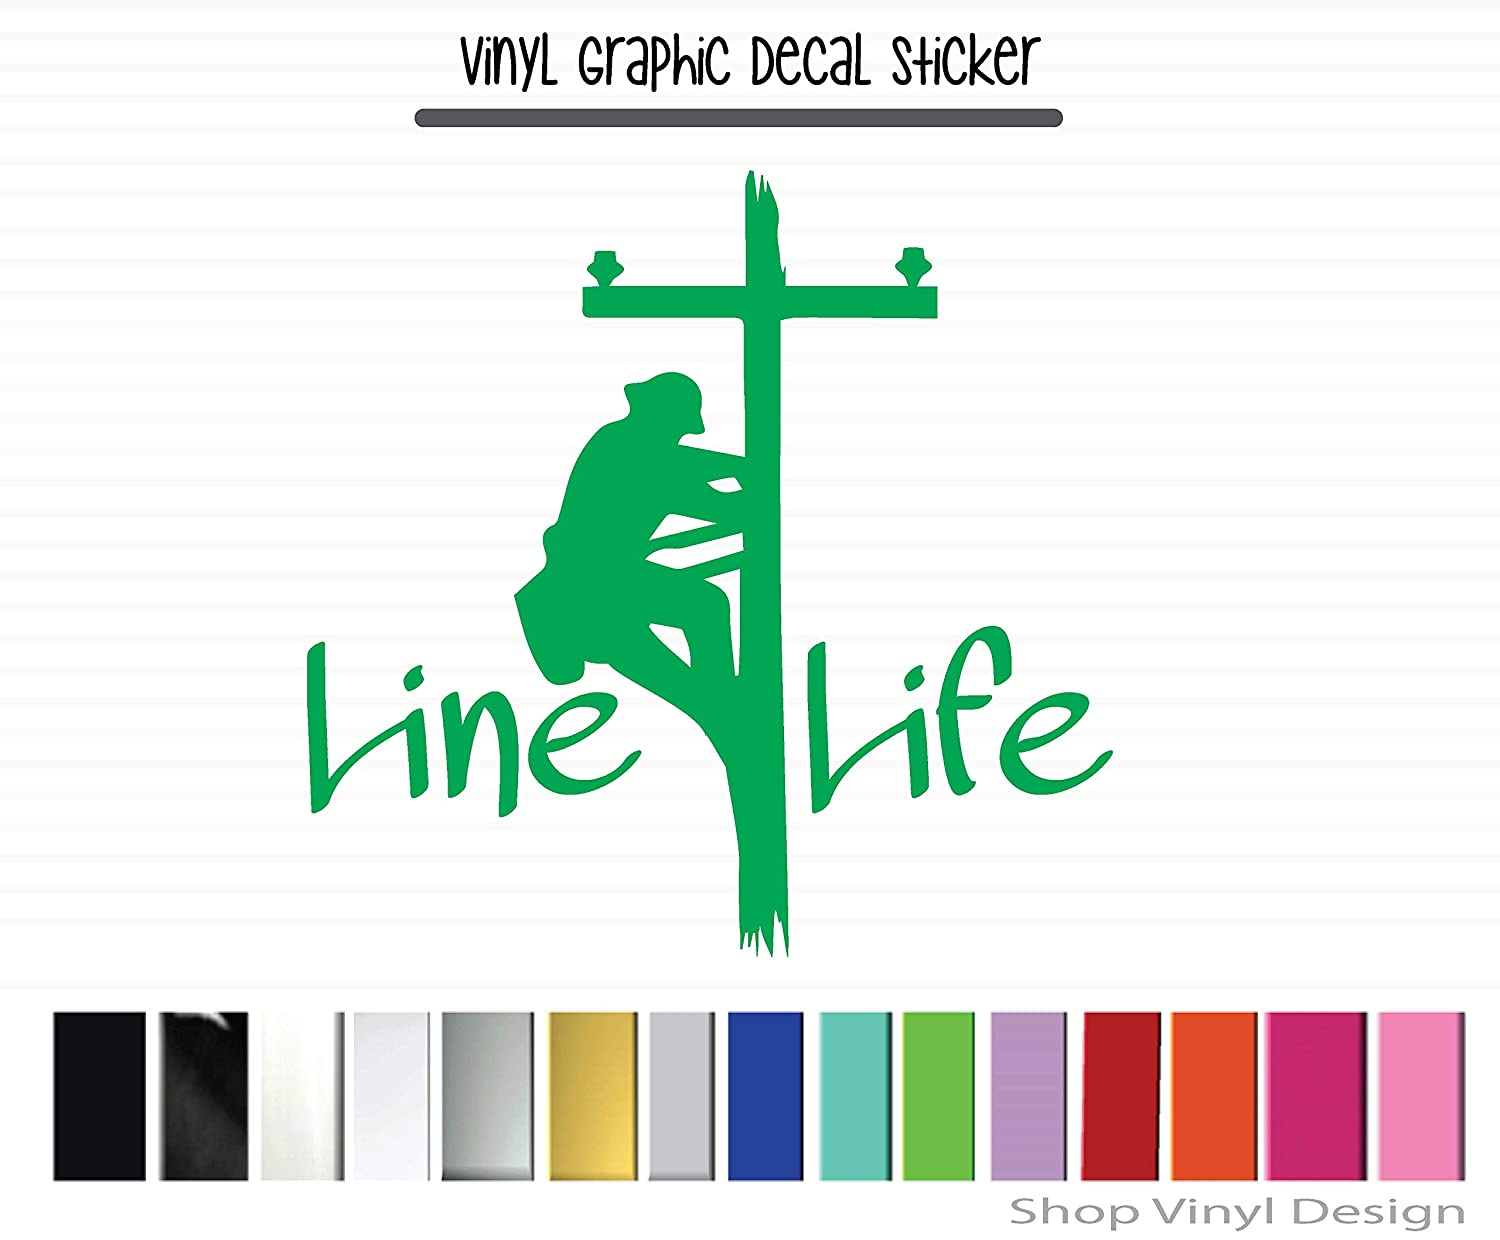 Made To Order Line Life Vinyl Vinyl Graphic Decal Sticker for Vehicle Car Truck SUV Window Laptop Cooler Planner Locker Safe Handmade Decal High Quality Outdoor Rated Vinyl